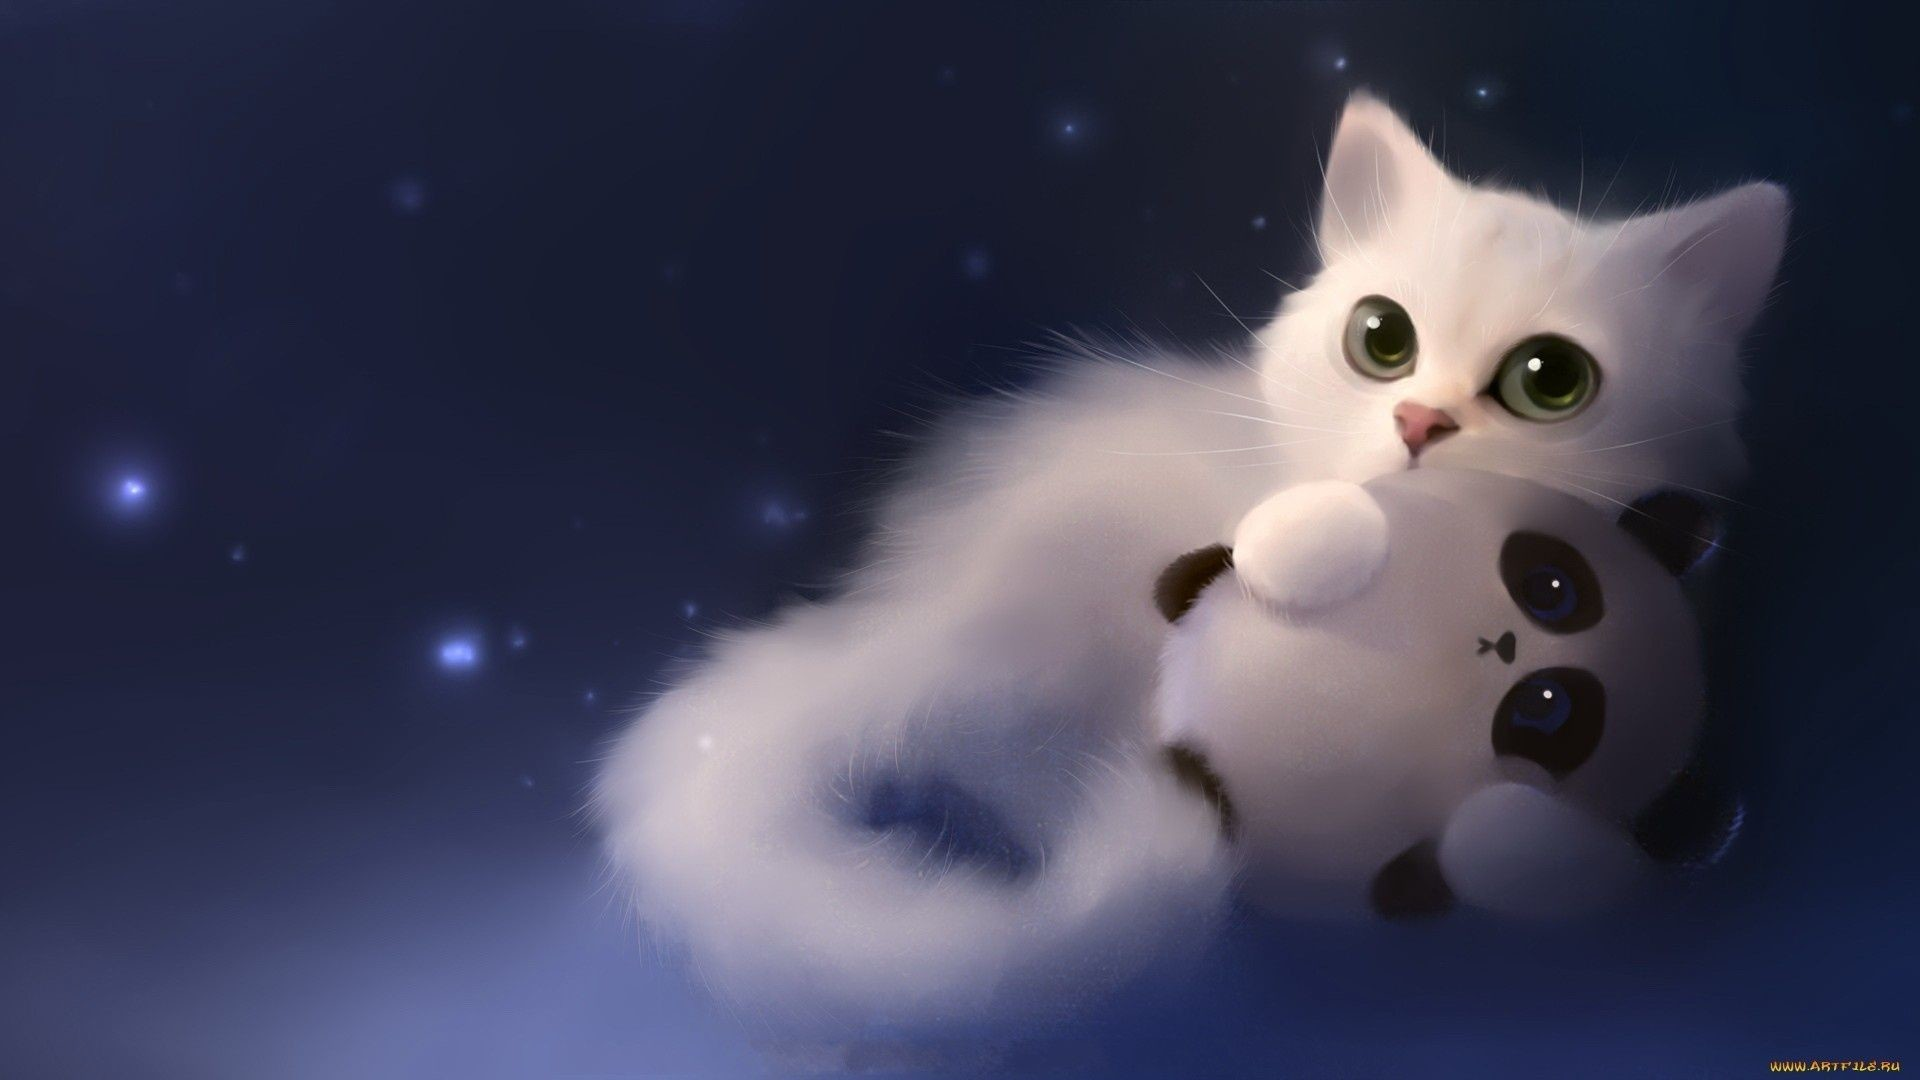 Free HD Cat Wallpapers